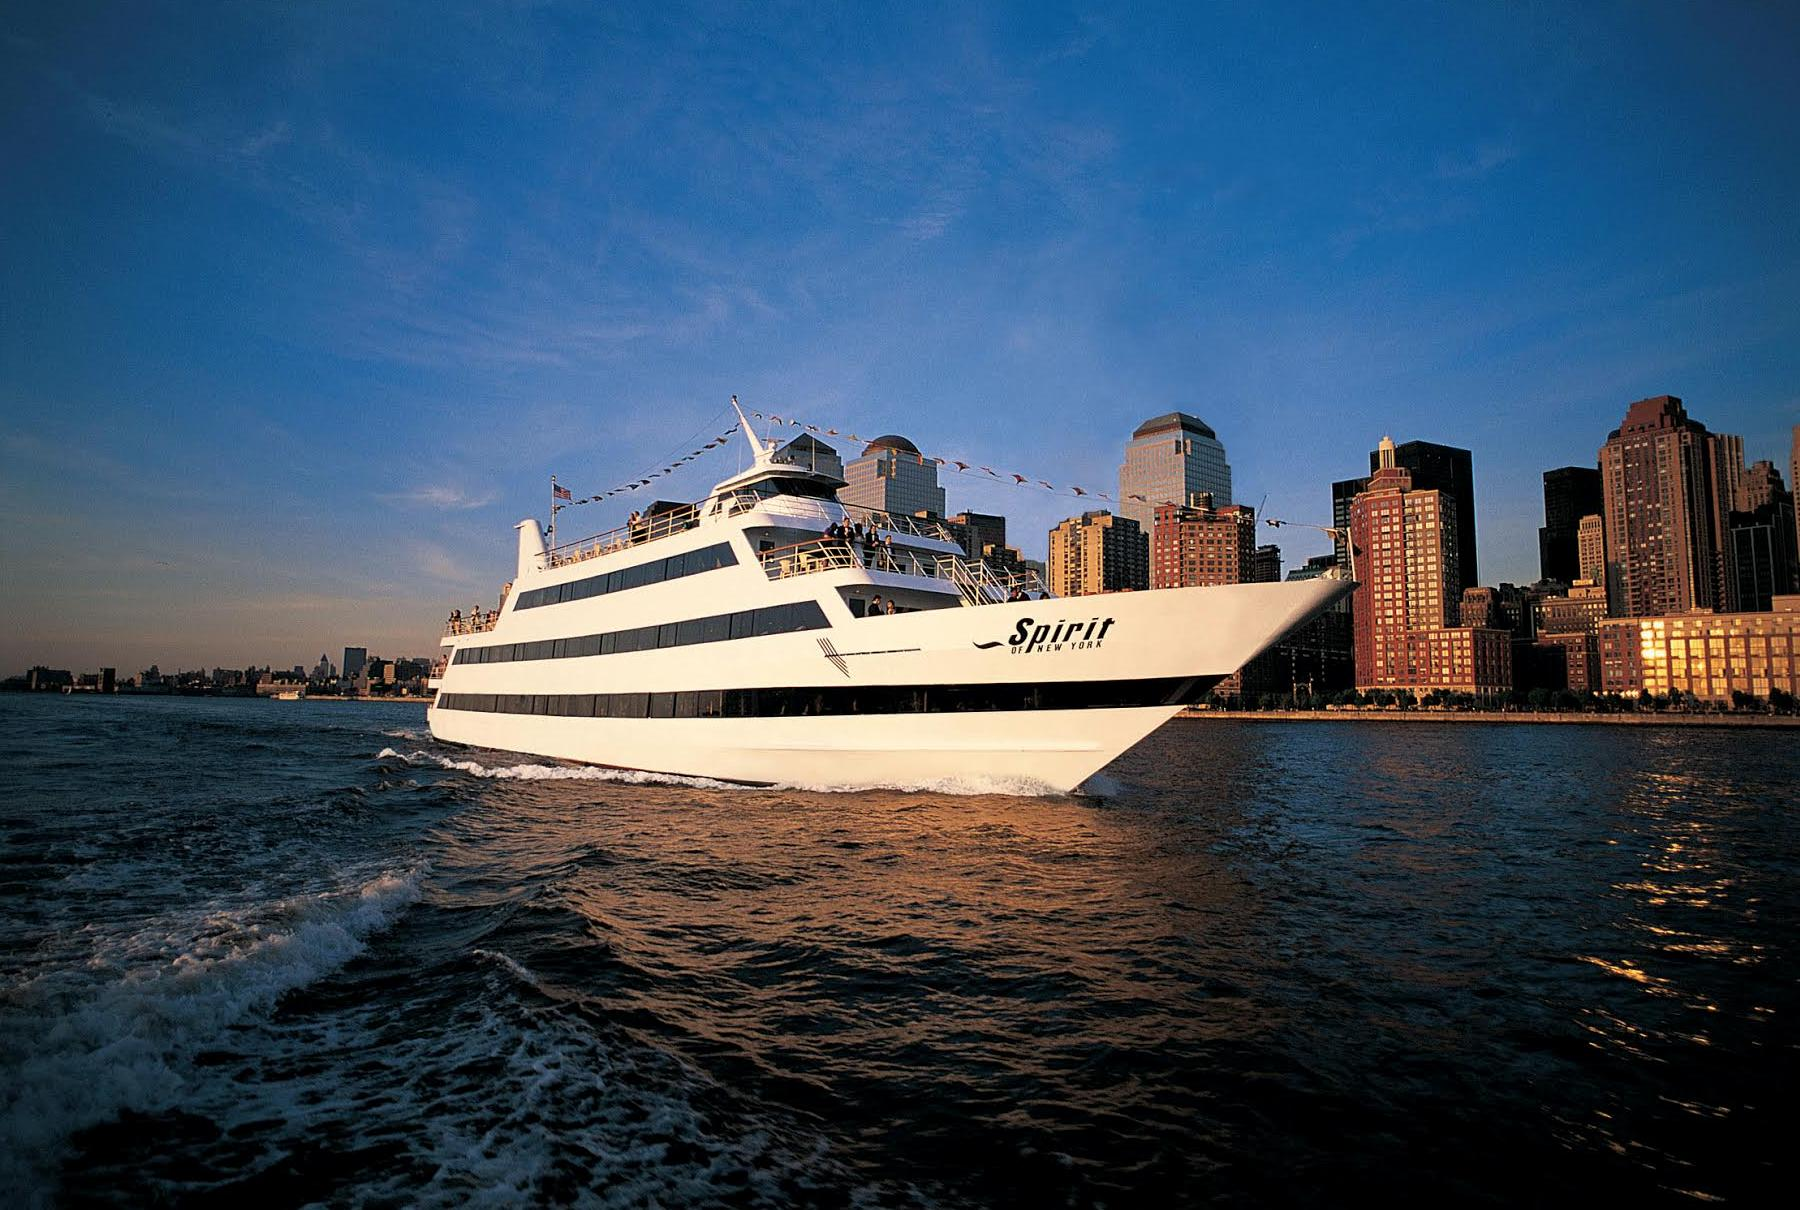 Bww Previews Spirit Cruises Of Ny And Nj Has 3 New Specialty Cruises To Kick Start The Summer